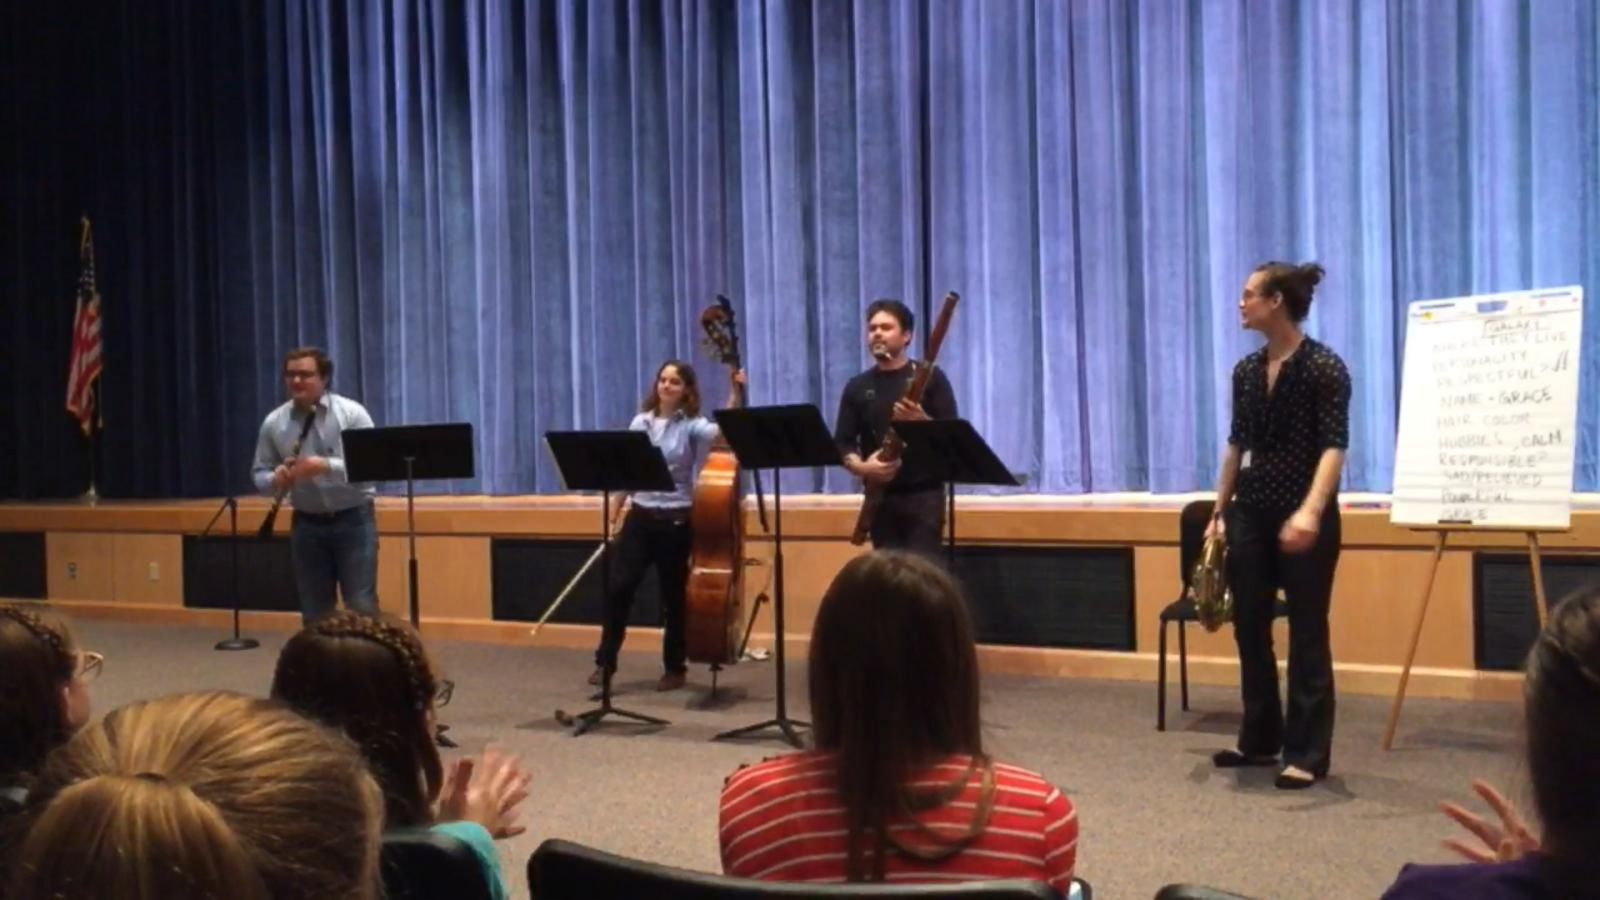 VIDEO: Classical City: Telling Stories Through Music